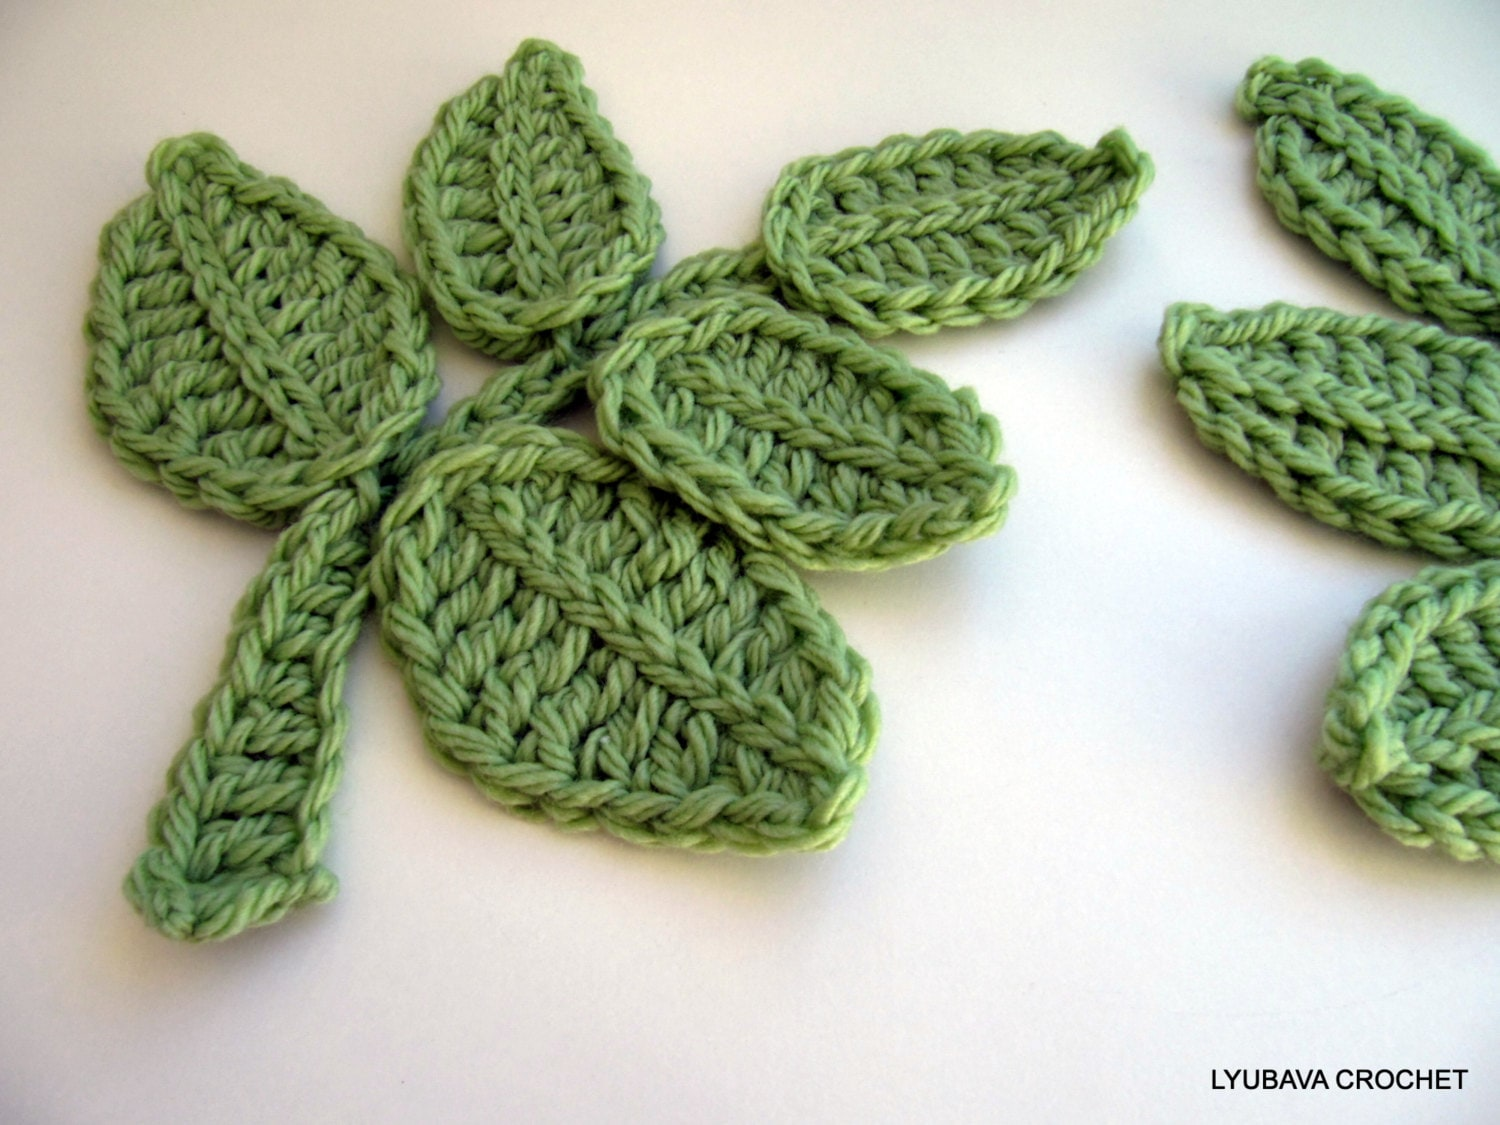 Crochet pattern leaf branch pattern crochet flower applique zoom bankloansurffo Image collections